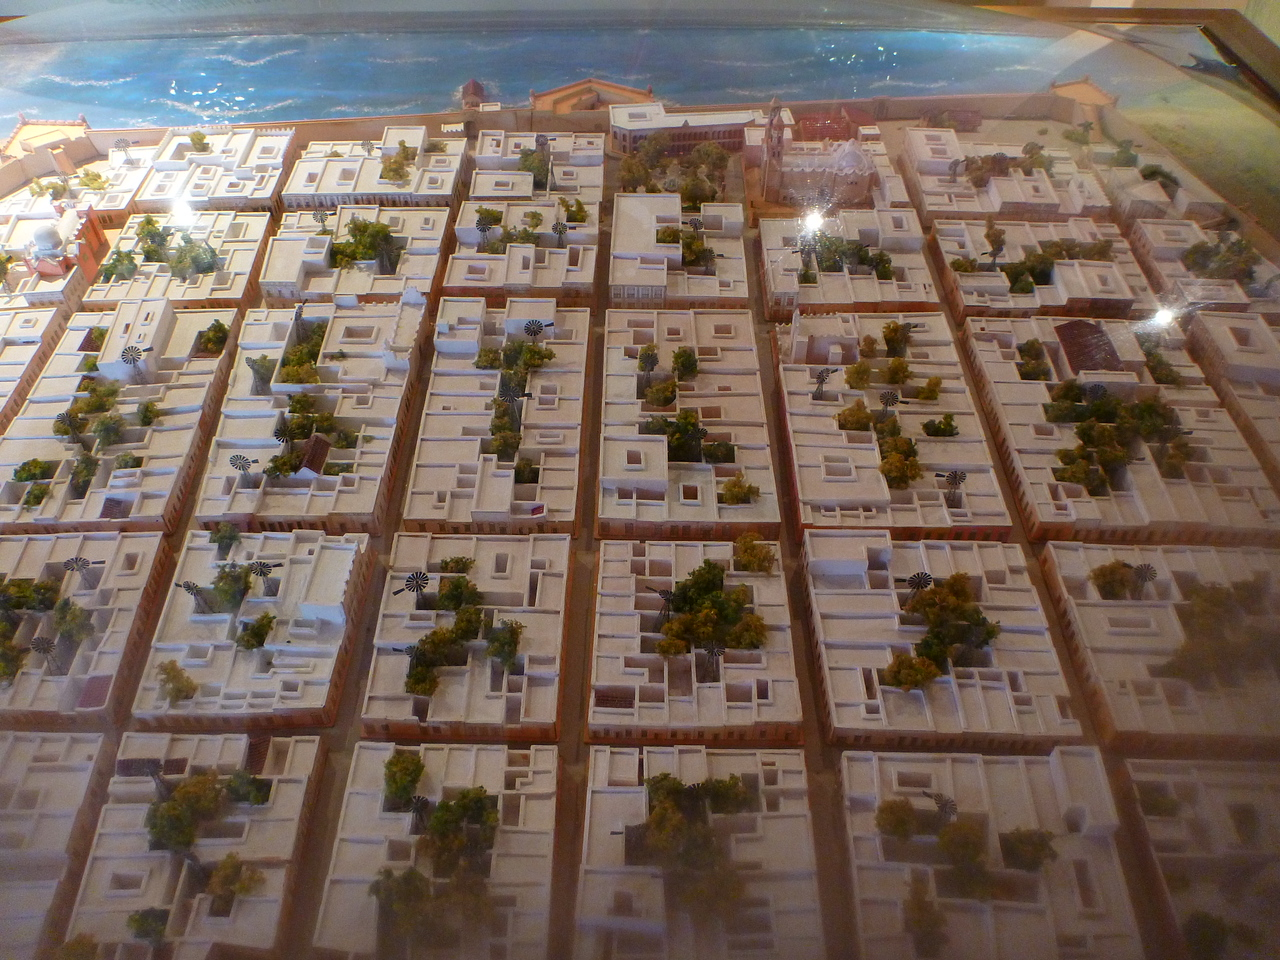 This is a model of Campeche that we see at the museum. Note the narrow streets and the large complex of buildings that cover each block.